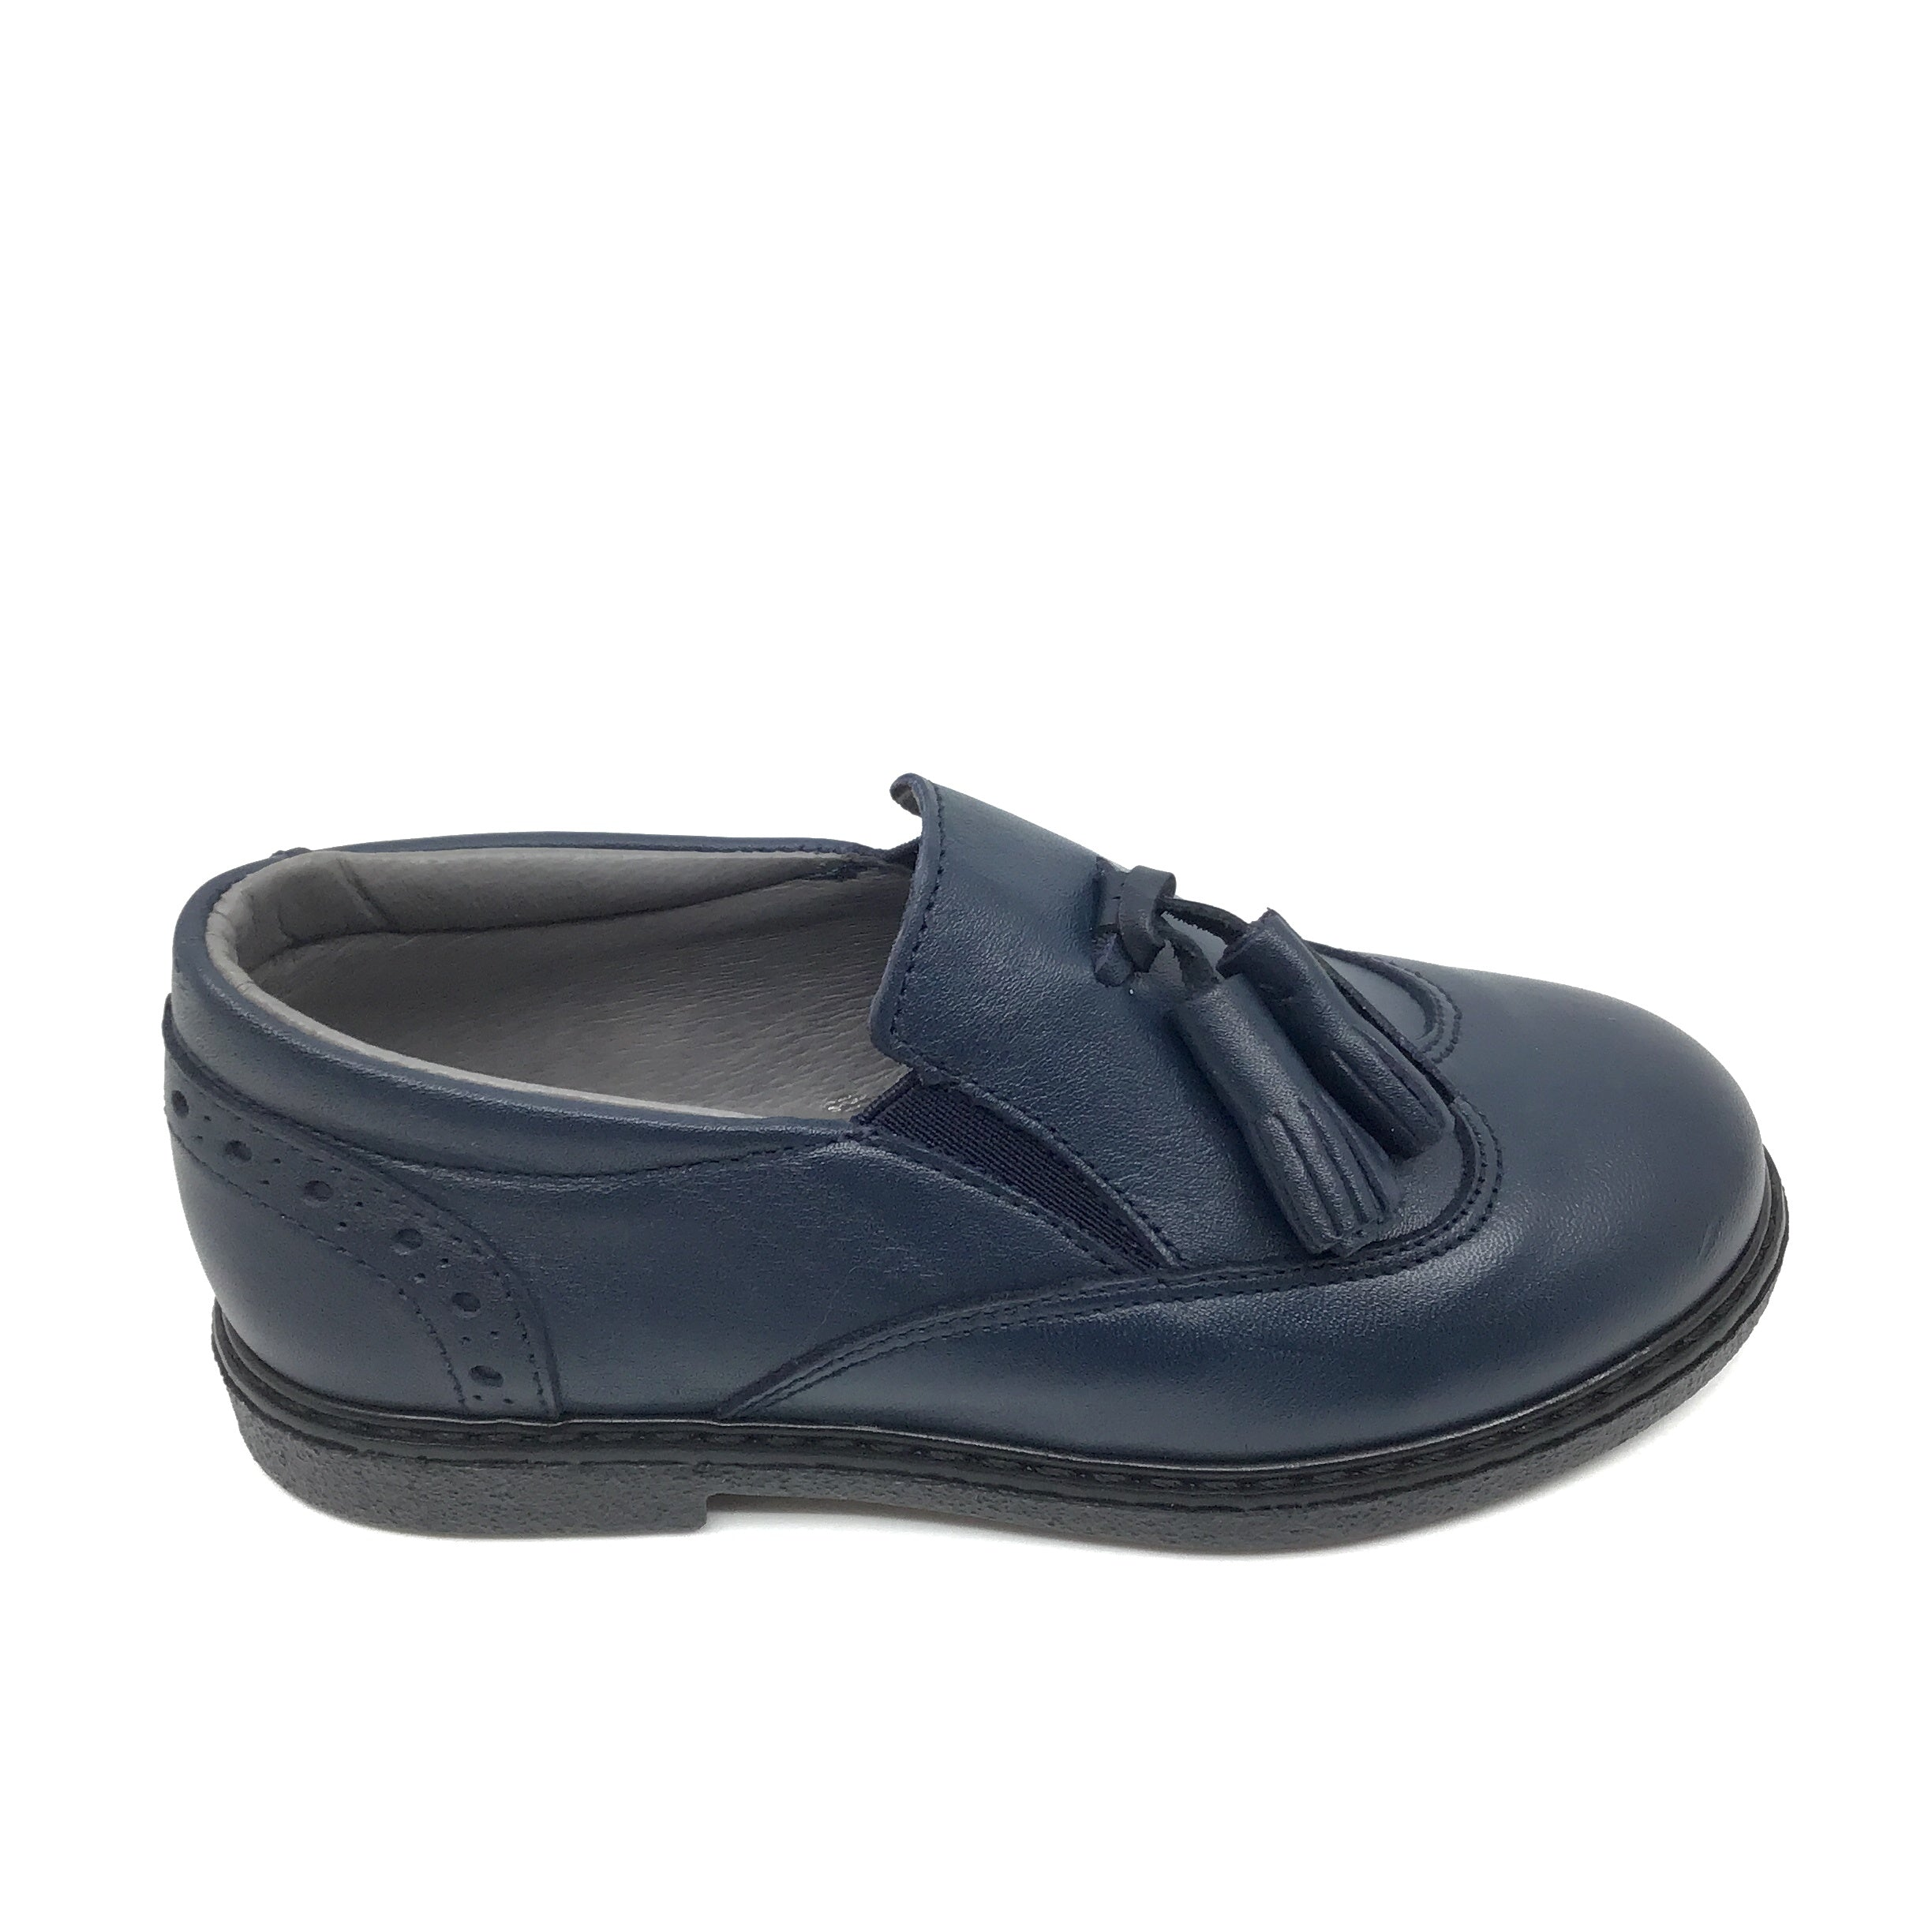 Blublonc Navy Slip On with Tassels